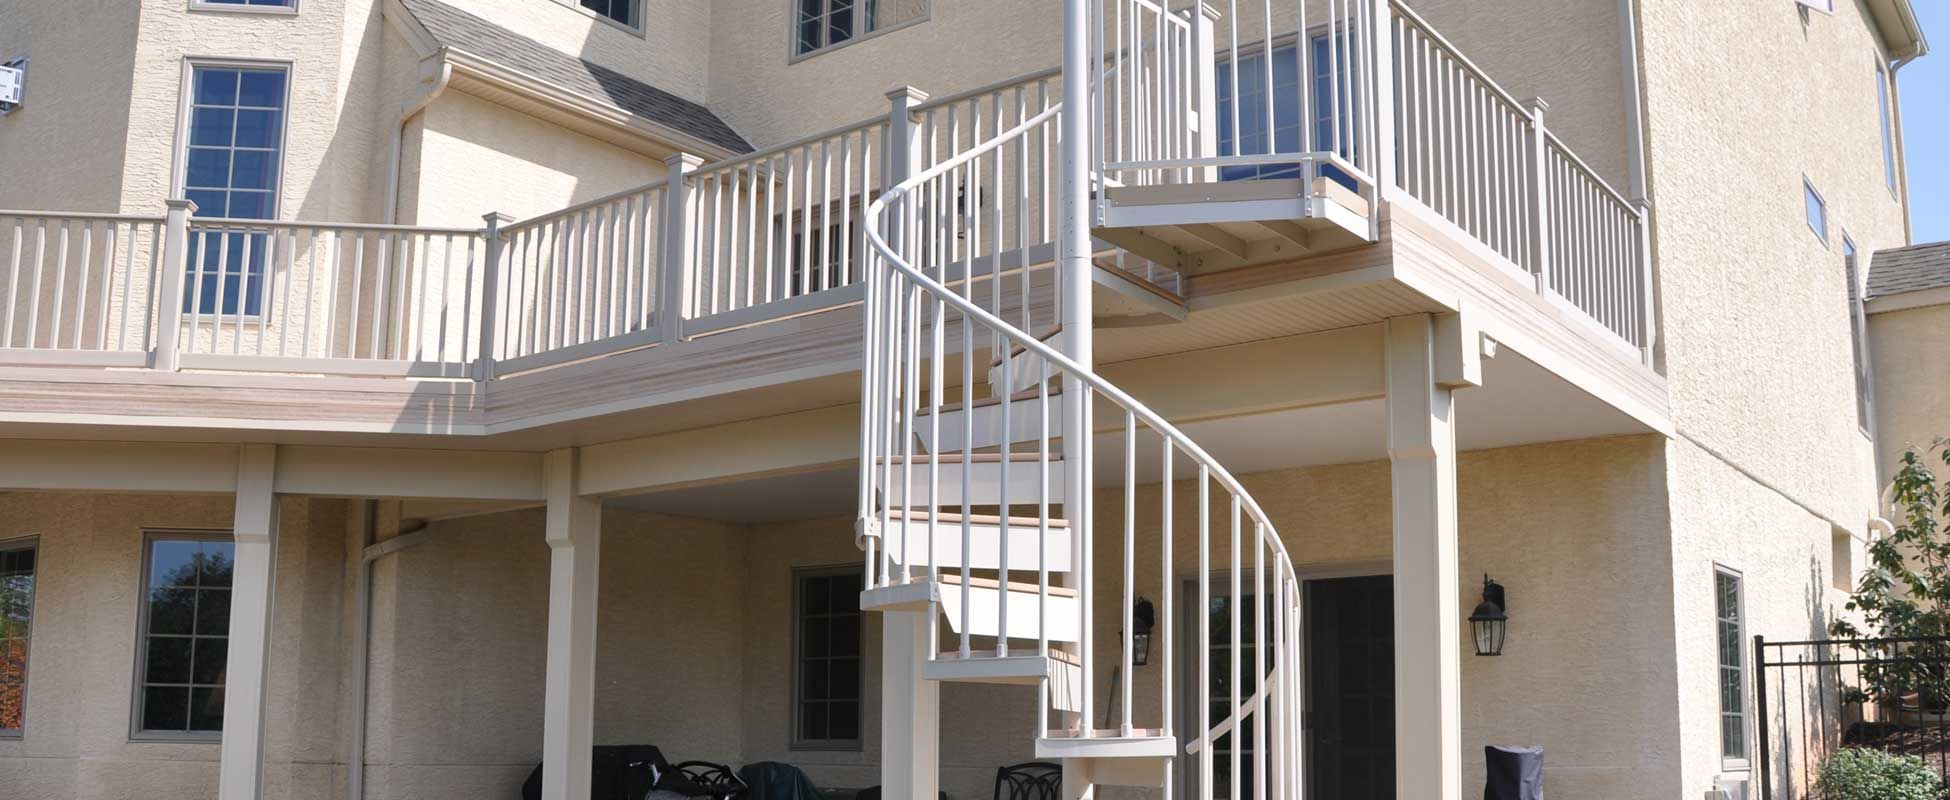 Outdoor Spiral Deck Stairs Spiral Stairs Spiral Staircases Salterspiral